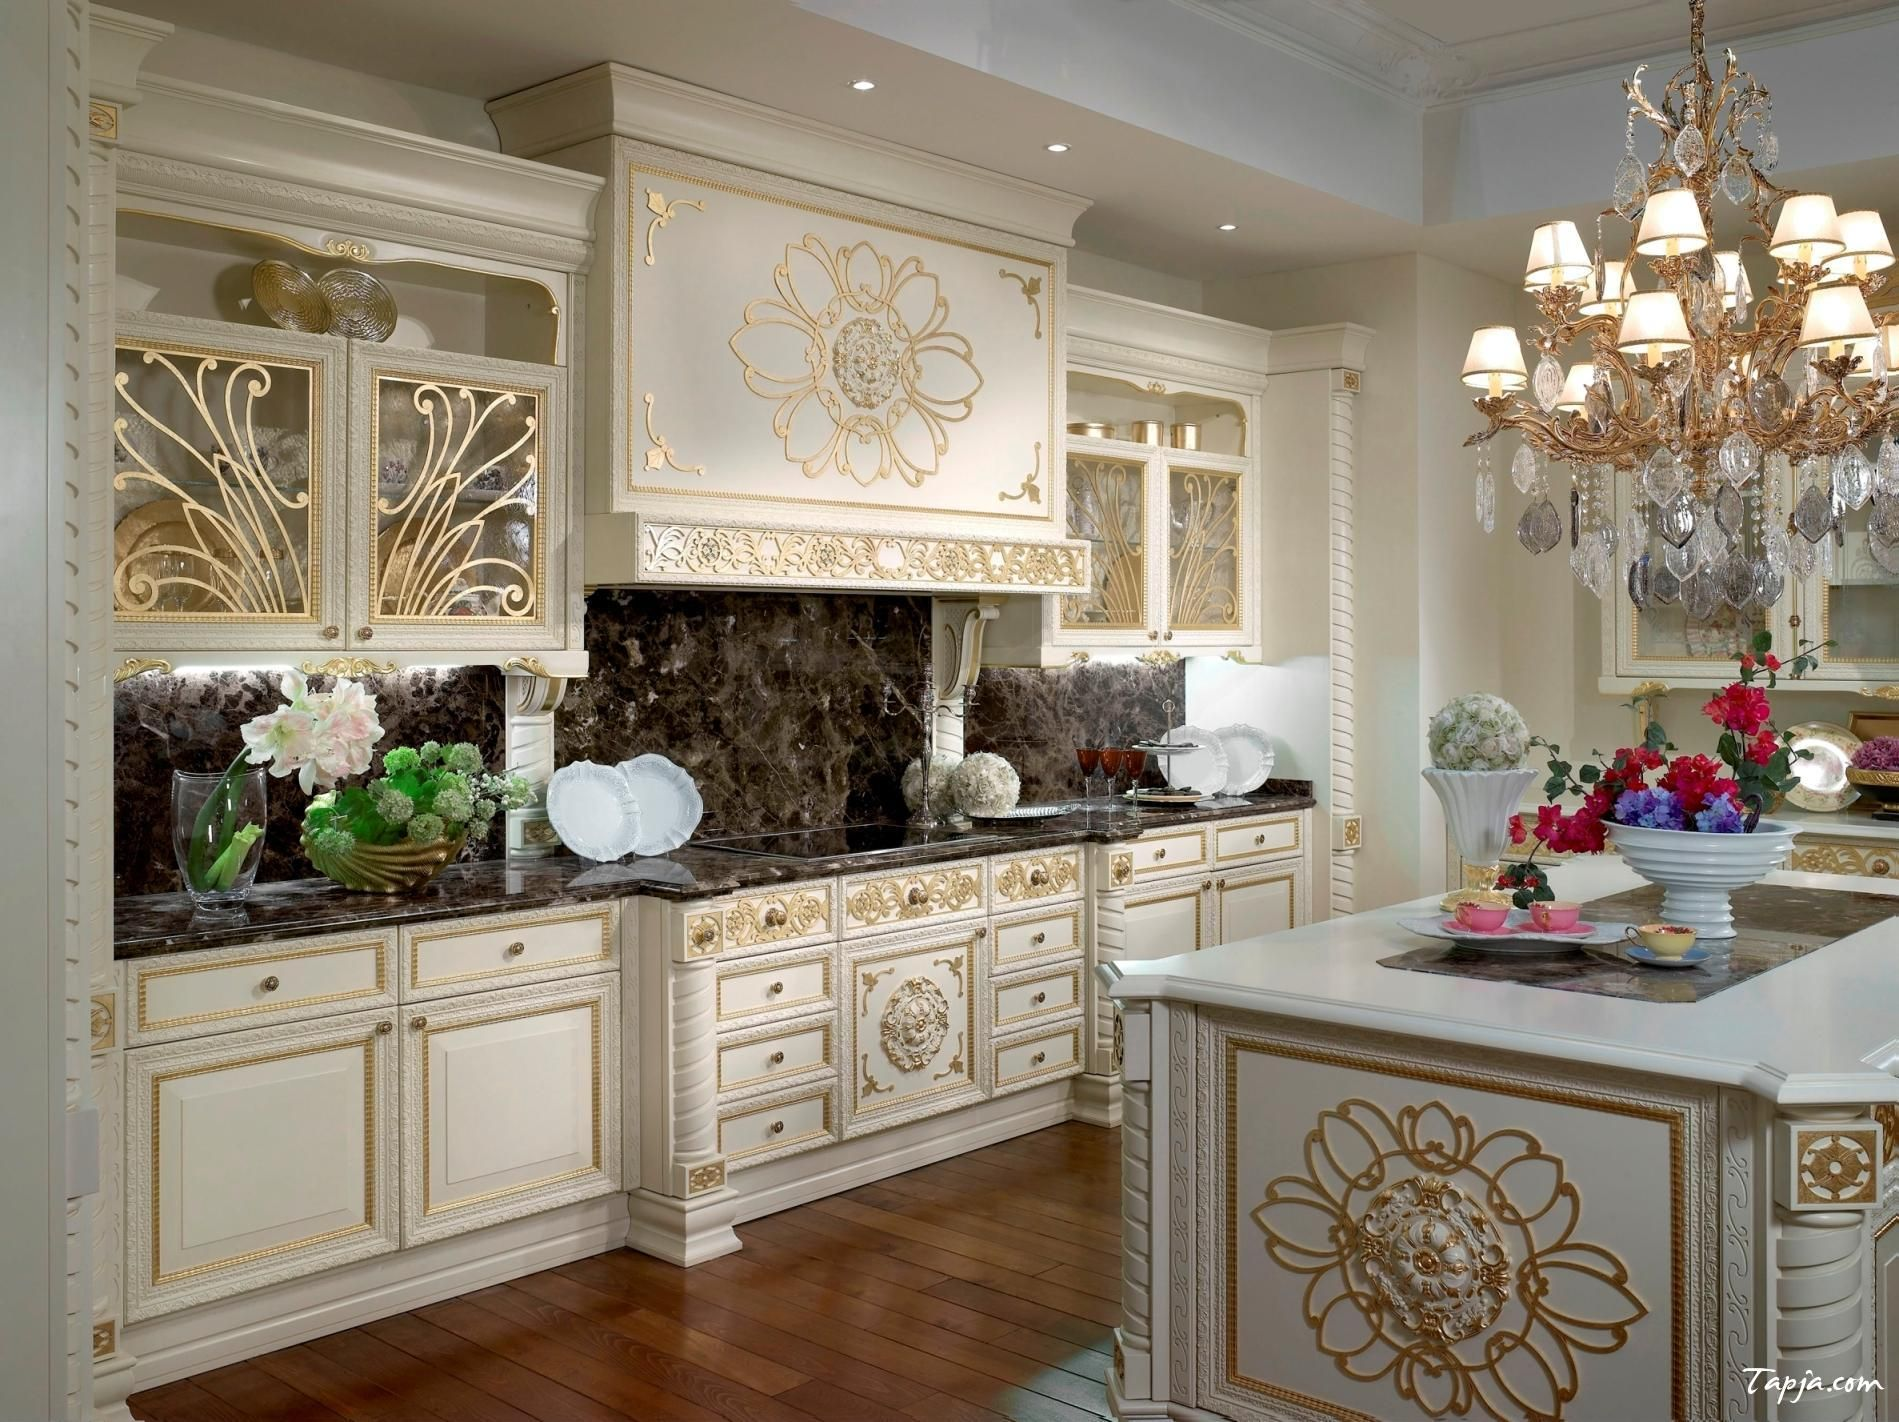 Superieur Classy Luxury Photo Kitchen Design With White Gold Kitchen Cabinet And Fancy  Chandelier Above Kitchen Island